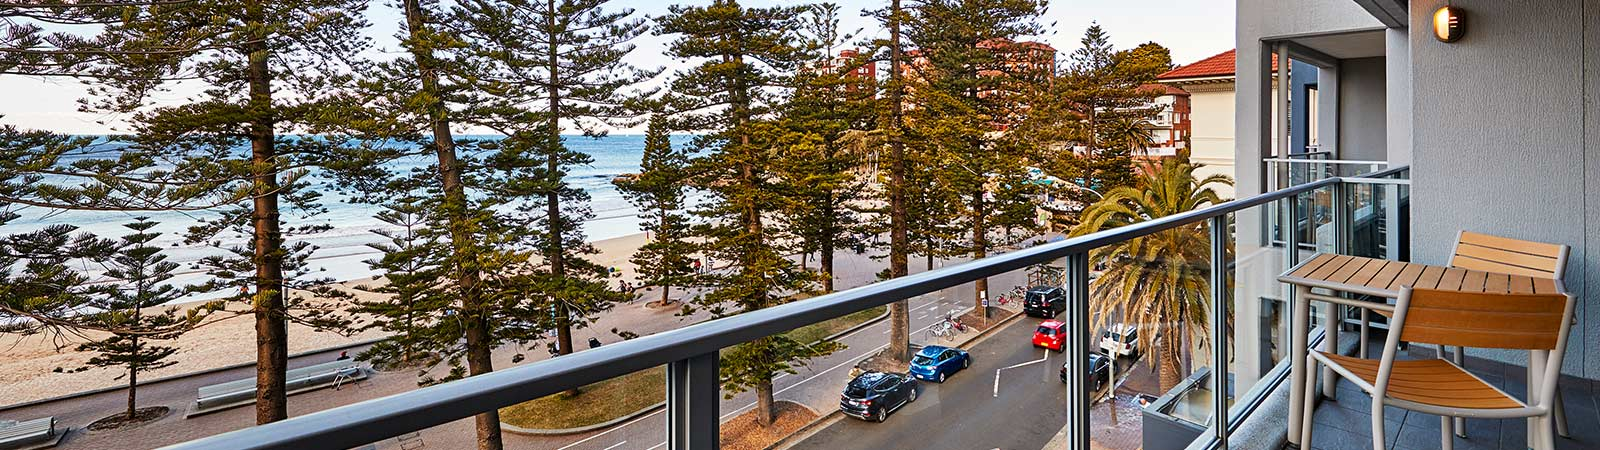 The Sebel Sydney Manly Beach Suites and Apartments